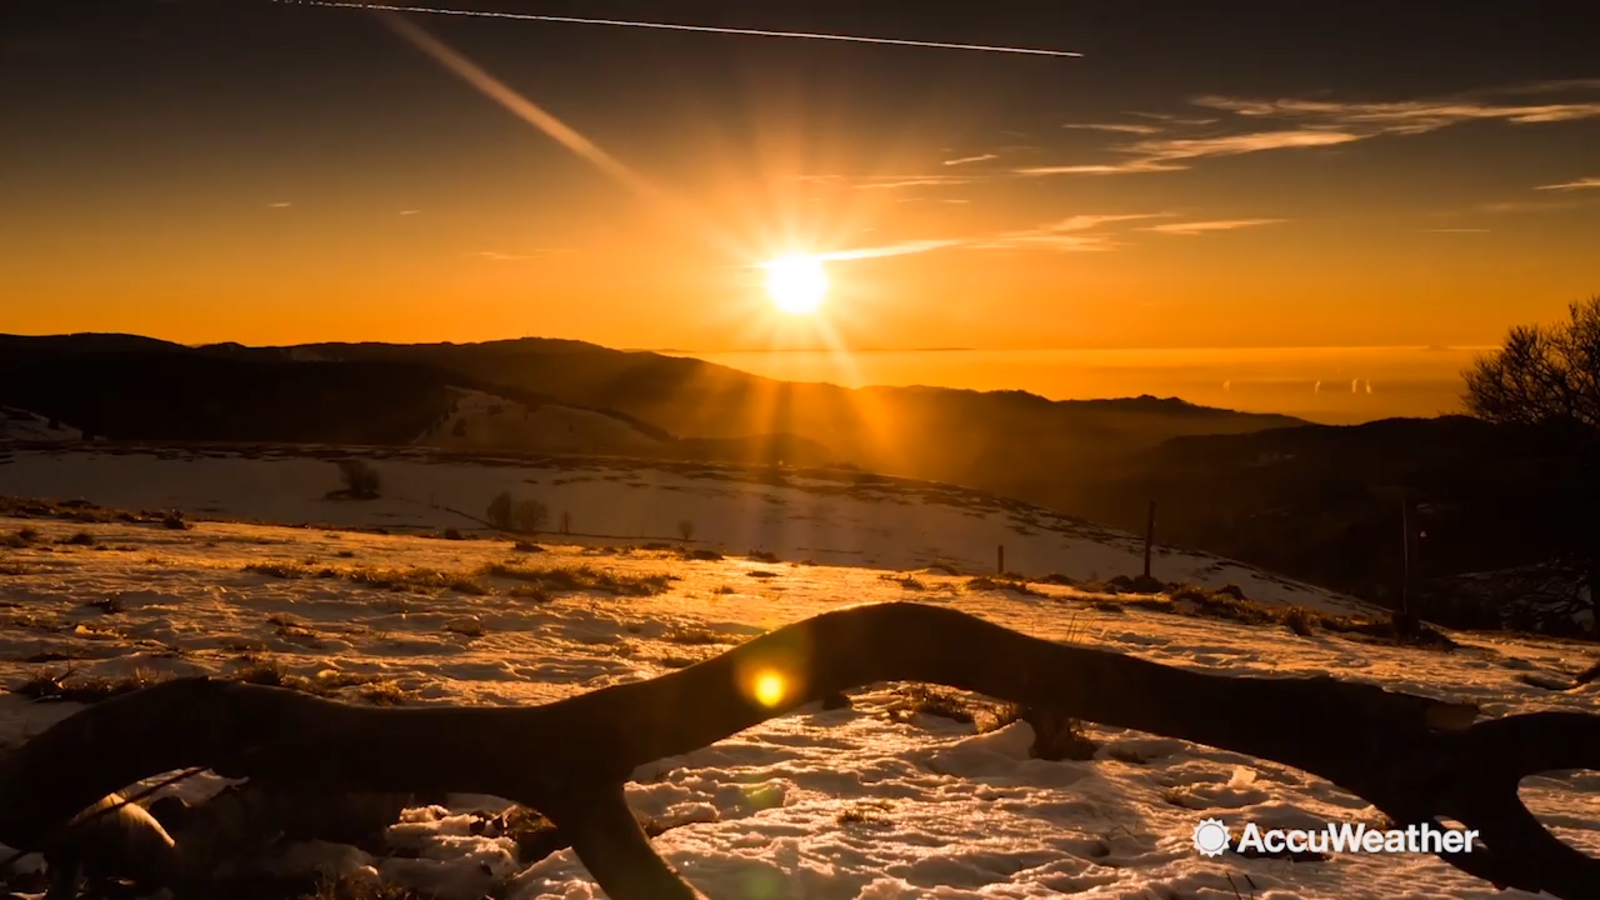 Winter Solstice 2020: What You Need to Know About the Shortest Day of the Year